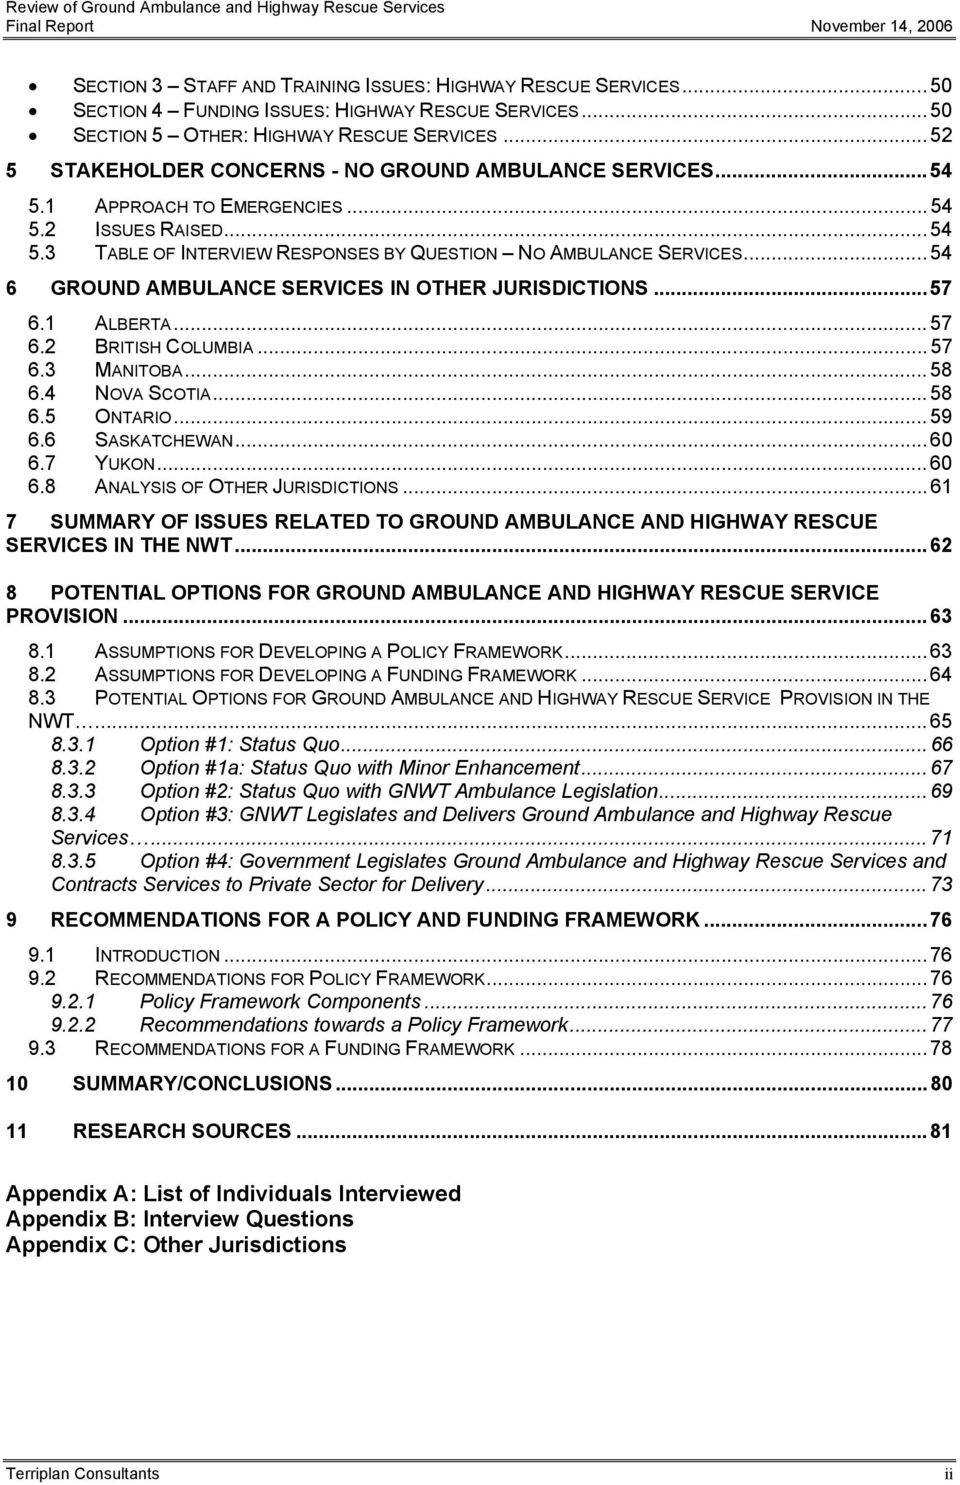 ..54 6 GROUND AMBULANCE SERVICES IN OTHER JURISDICTIONS...57 6.1 ALBERTA...57 6.2 BRITISH COLUMBIA...57 6.3 MANITOBA...58 6.4 NOVA SCOTIA...58 6.5 ONTARIO...59 6.6 SASKATCHEWAN...60 6.